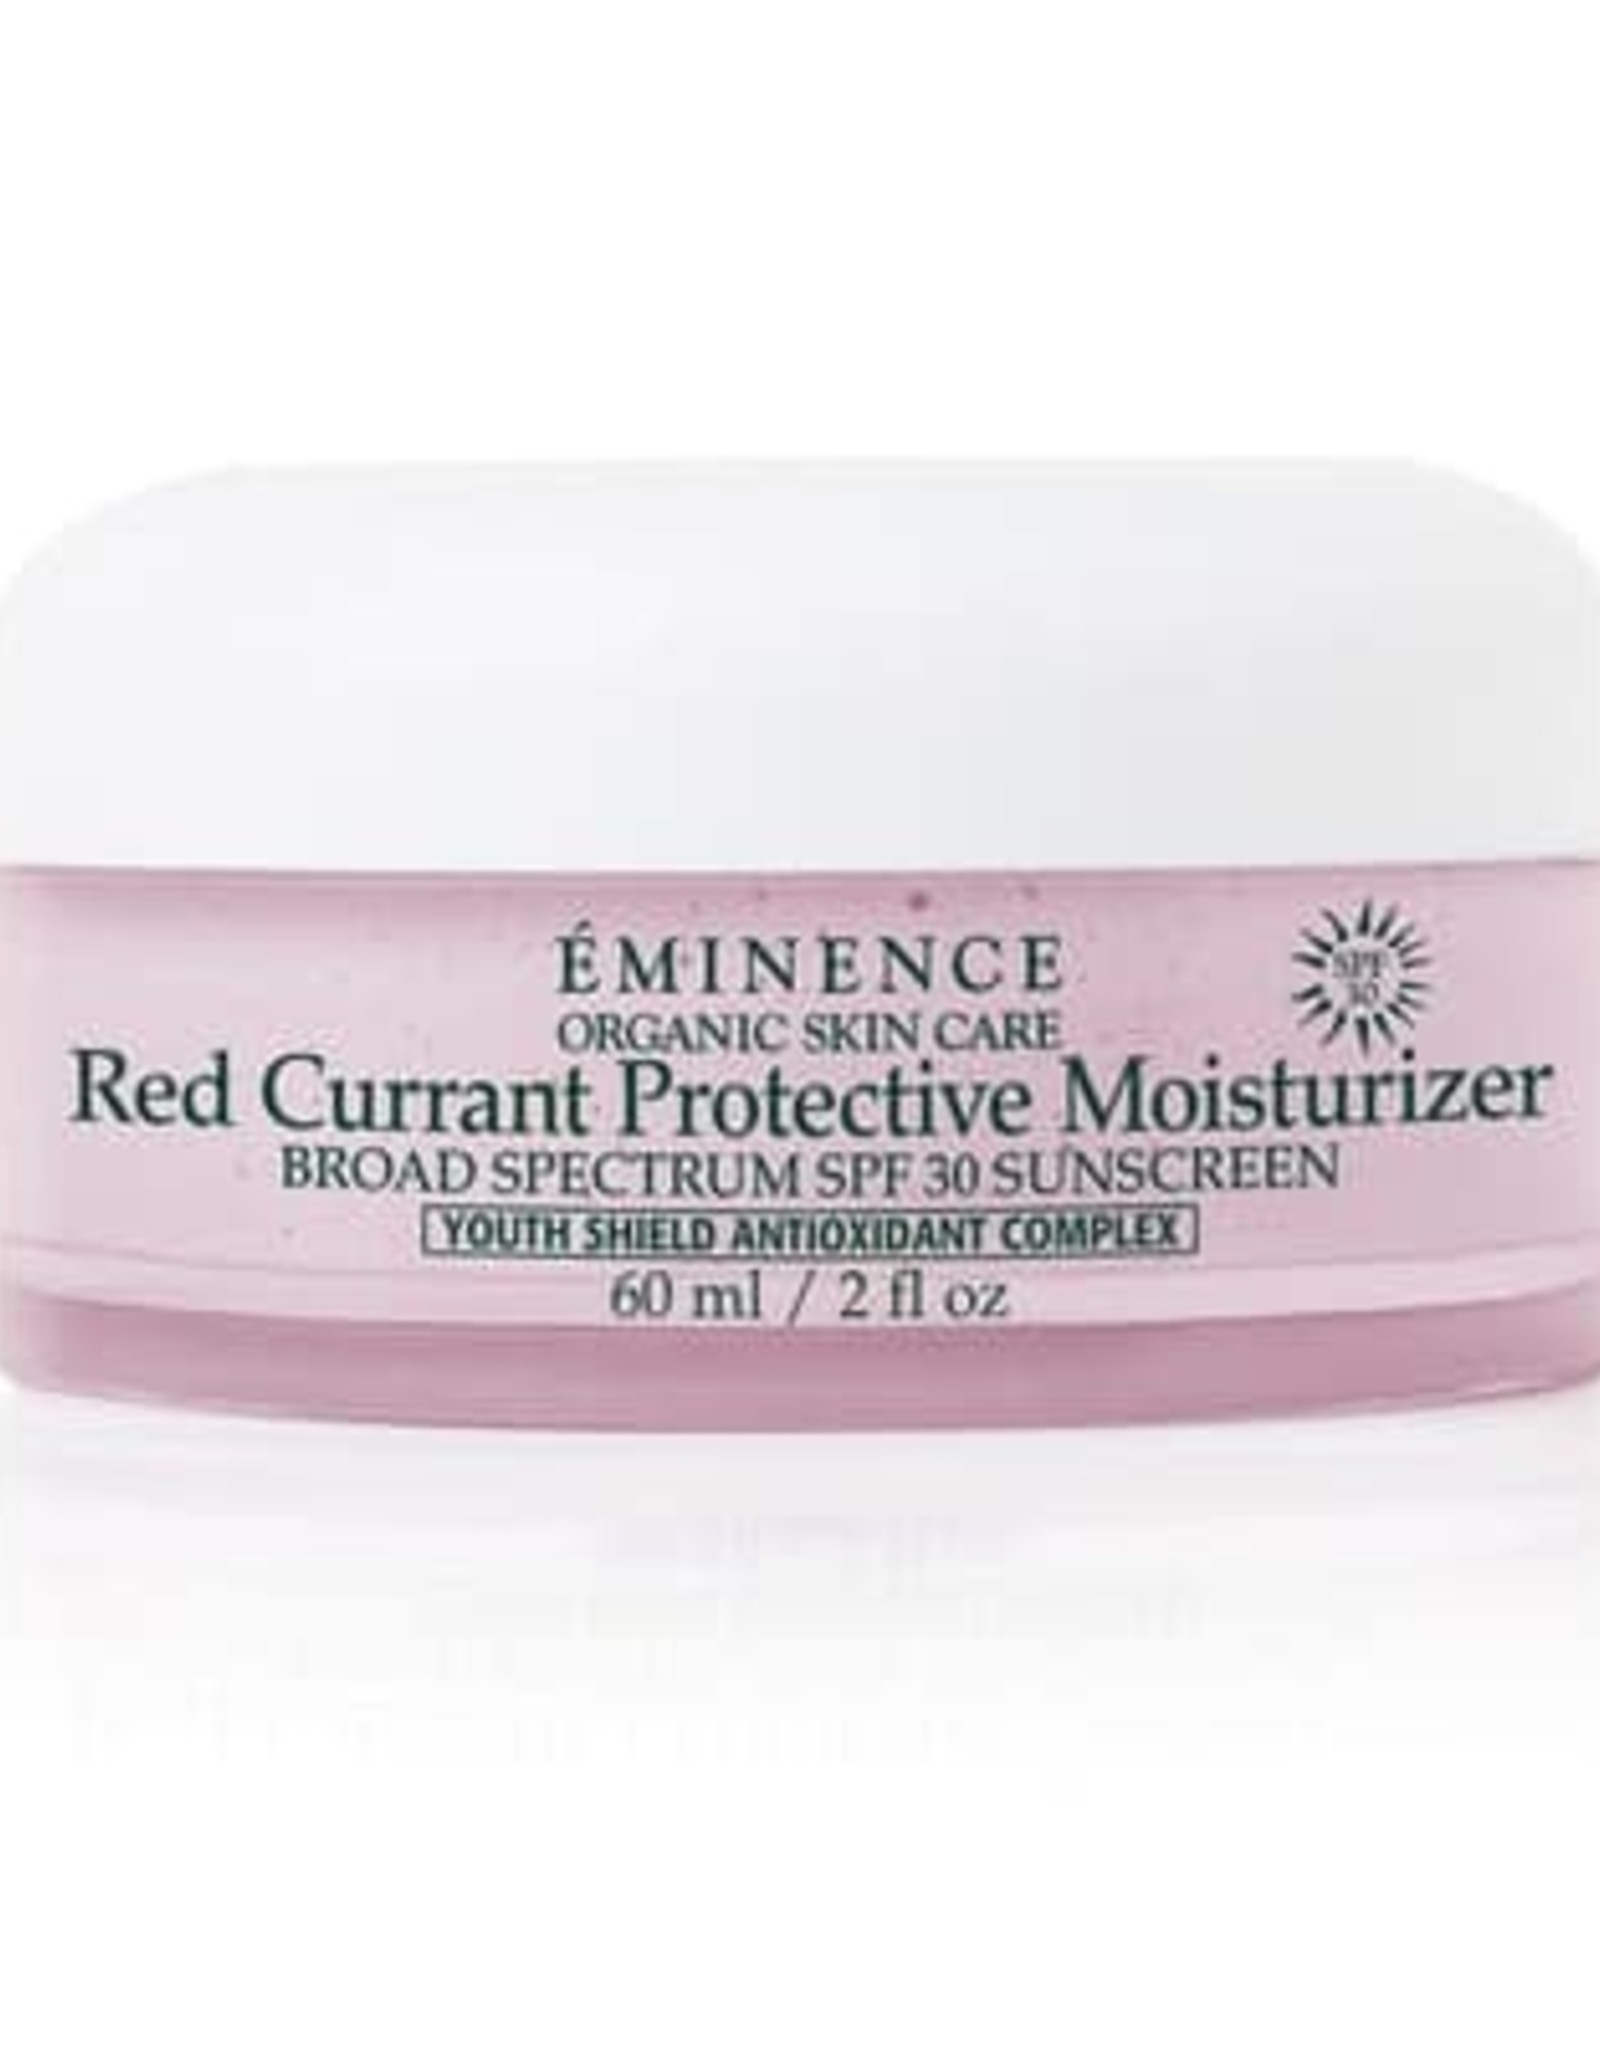 Eminence Red Currant Protective Moisturizer SPF 40